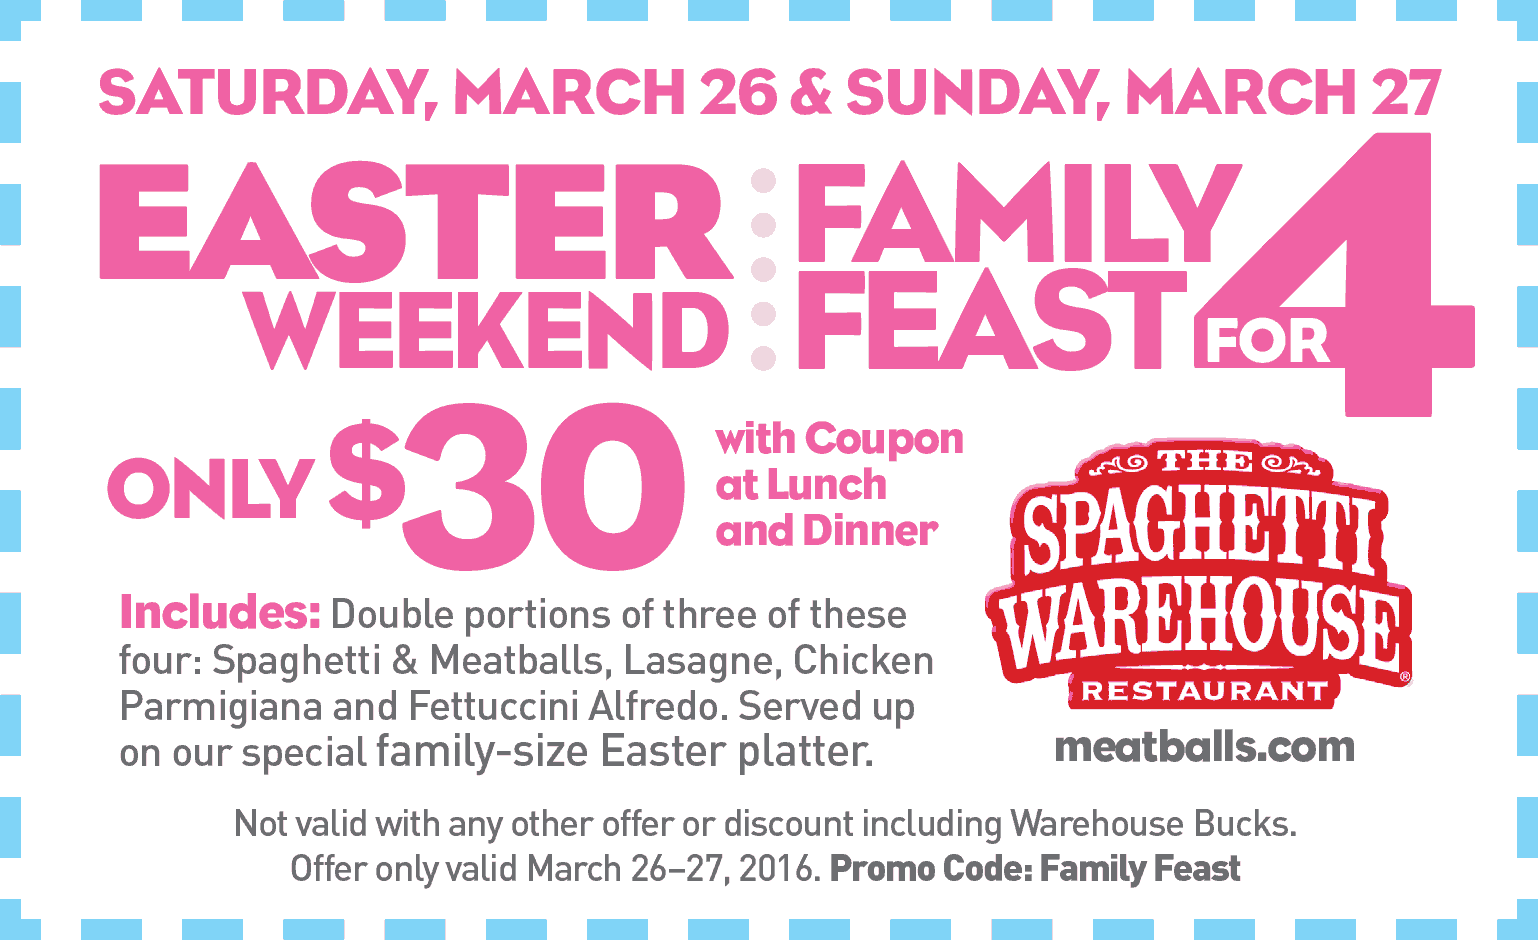 Spaghetti Warehouse Coupon May 2018 Family feast for 4 = $30 this weekend at Spaghetti Warehouse